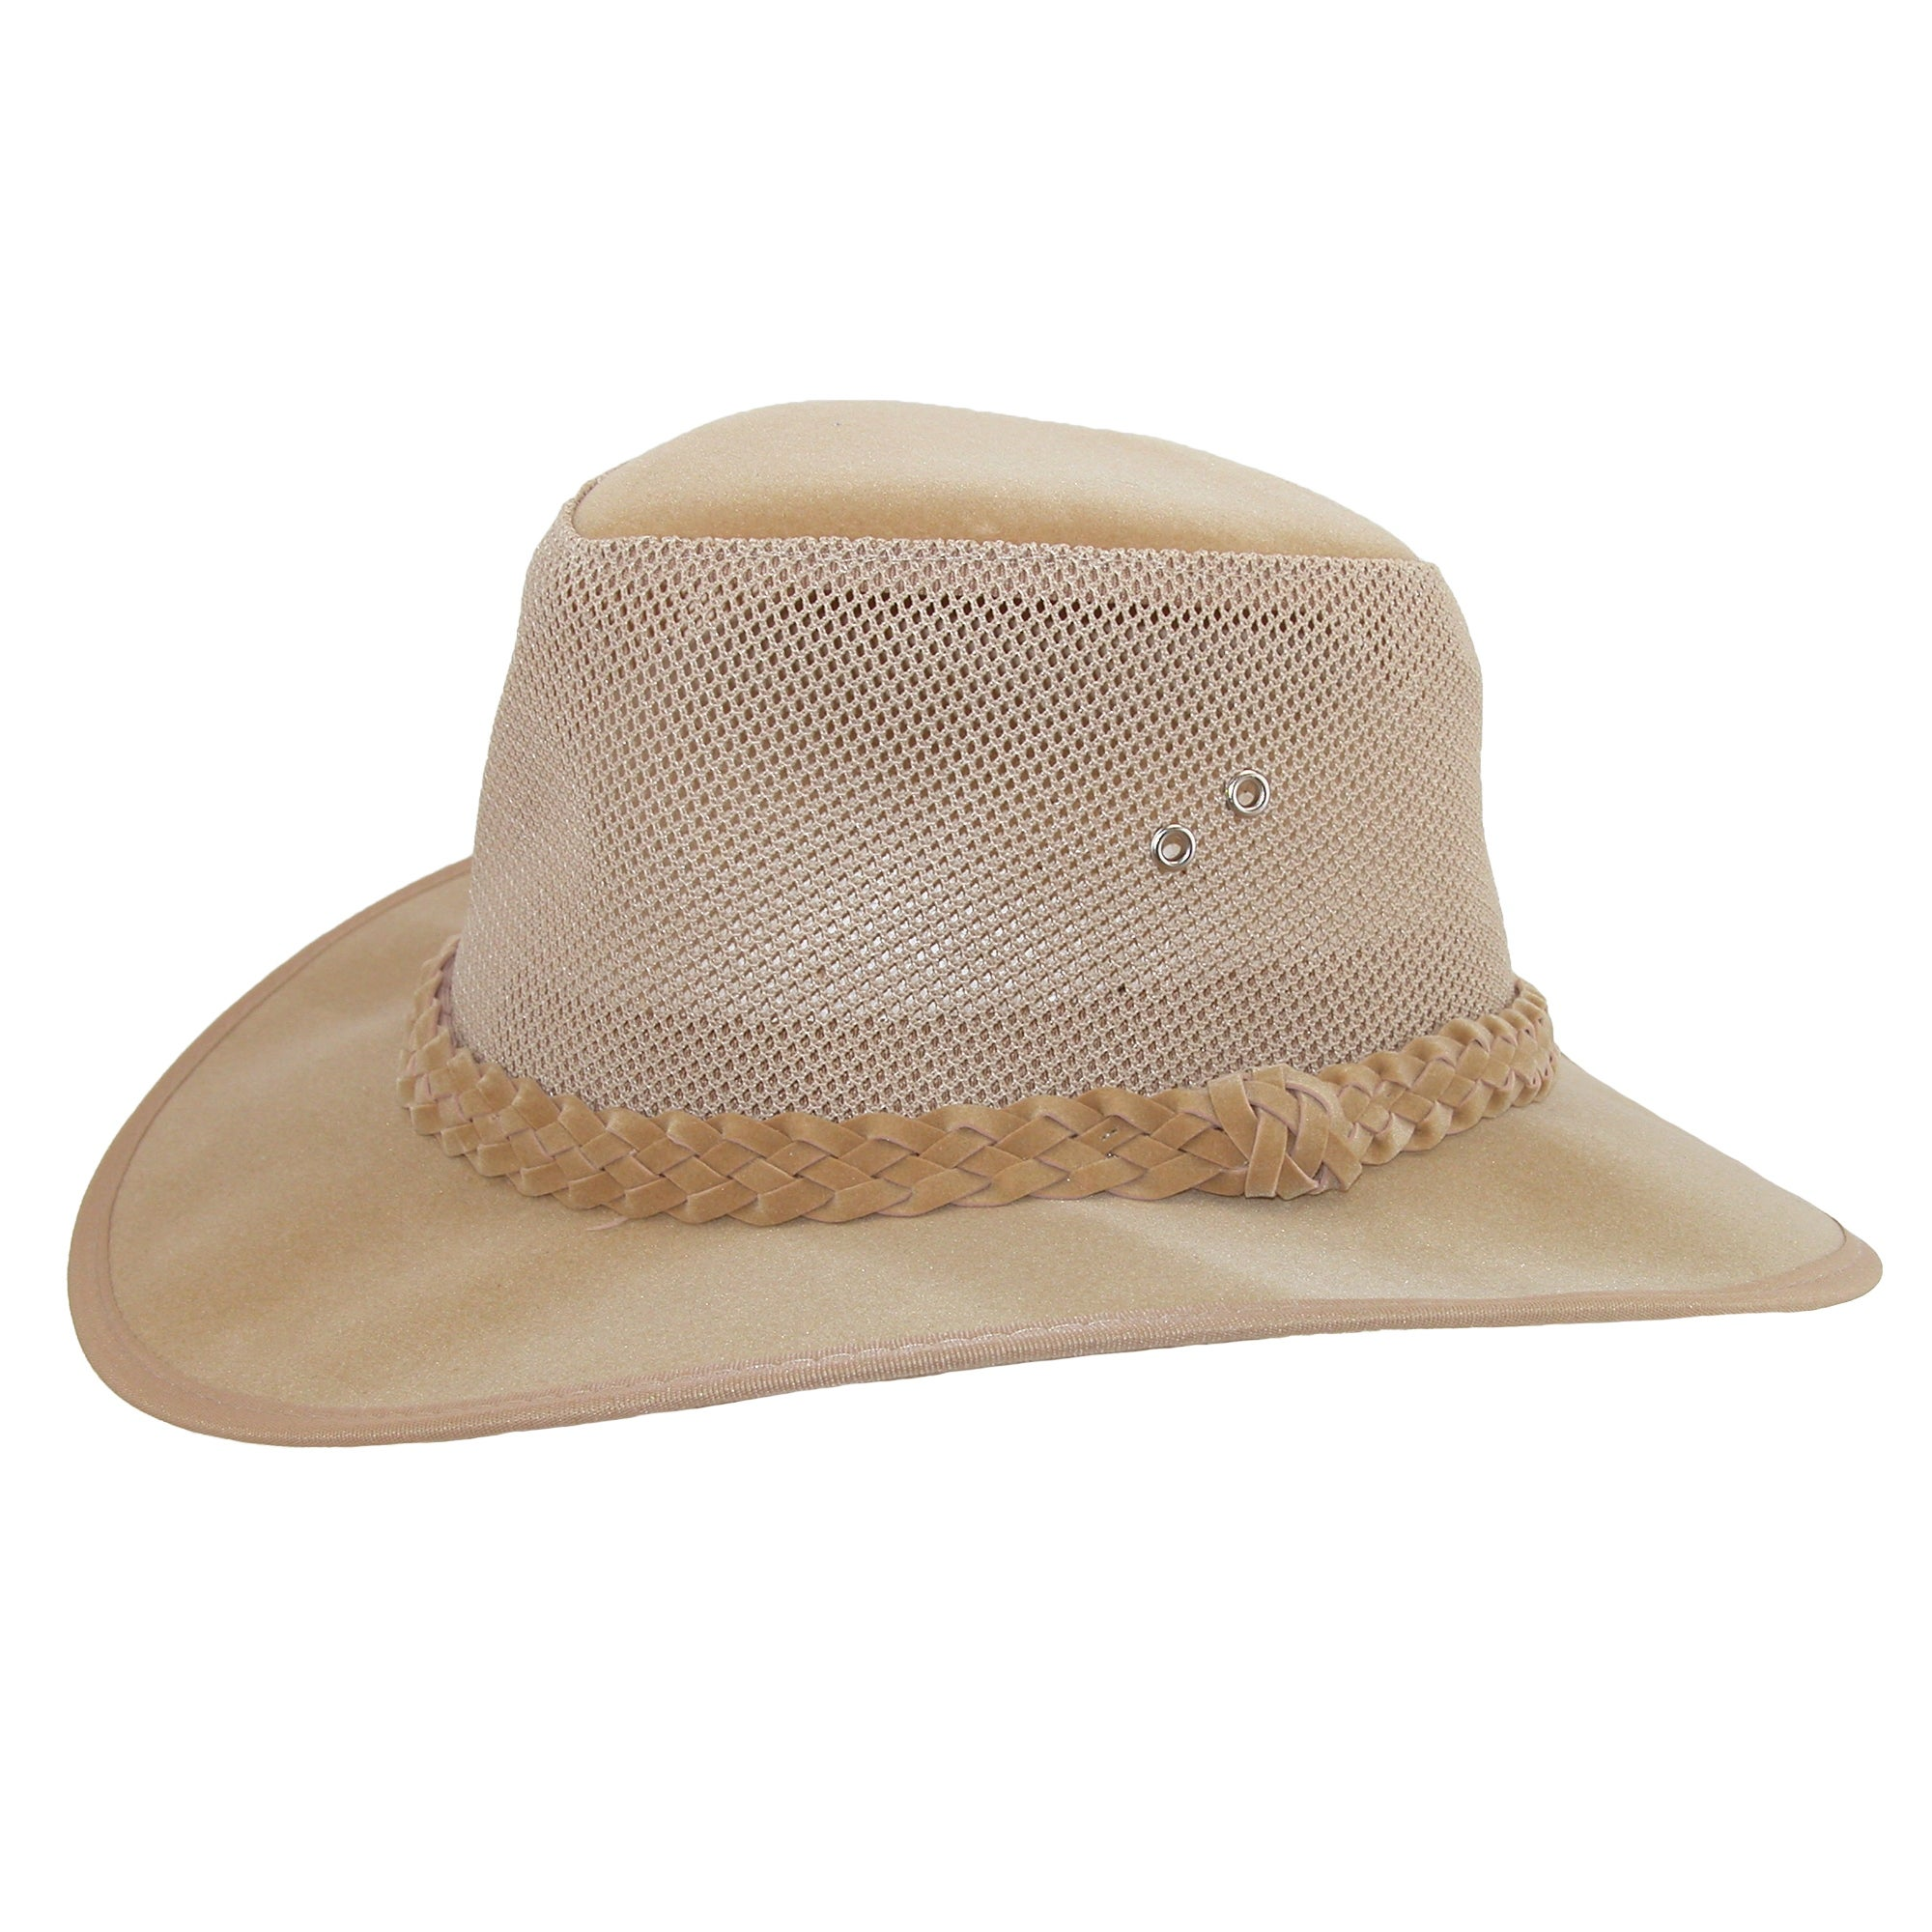 540e4664532 Shop Dorfman Pacific Men s Water Soaker UPF 50+ Mesh Sides Safari Hat -  Free Shipping On Orders Over  45 - Overstock - 14277774